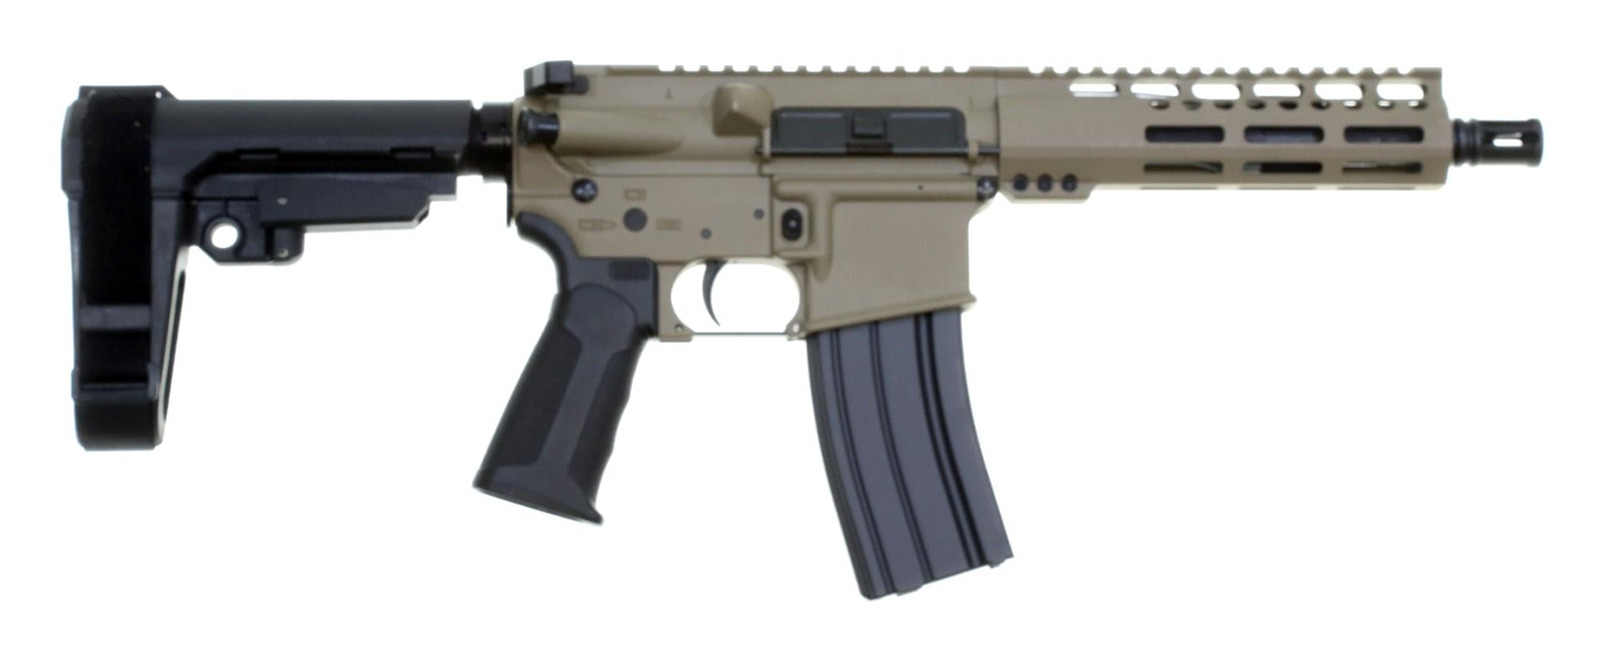 cbc-ps2-forged-aluminum-ar-pistol-fde-5-56nato-7-5-barrel-7-m-lok-rail-sba3-brace